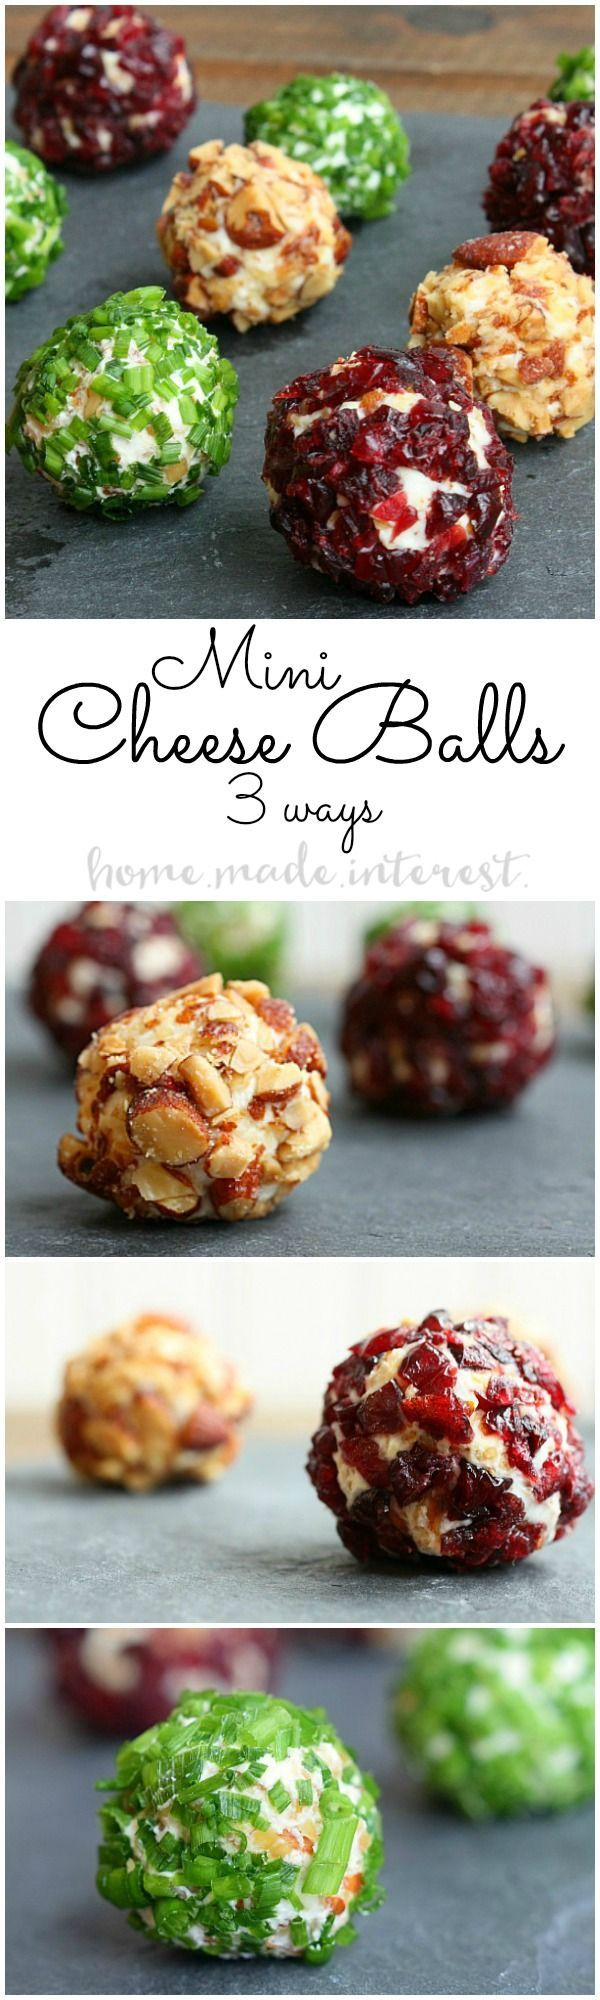 These mini cheese balls are an easy appetizer recipe that everyone will love. We have three simple cheese ball recipes with cranberries, almonds, and chives. #ad